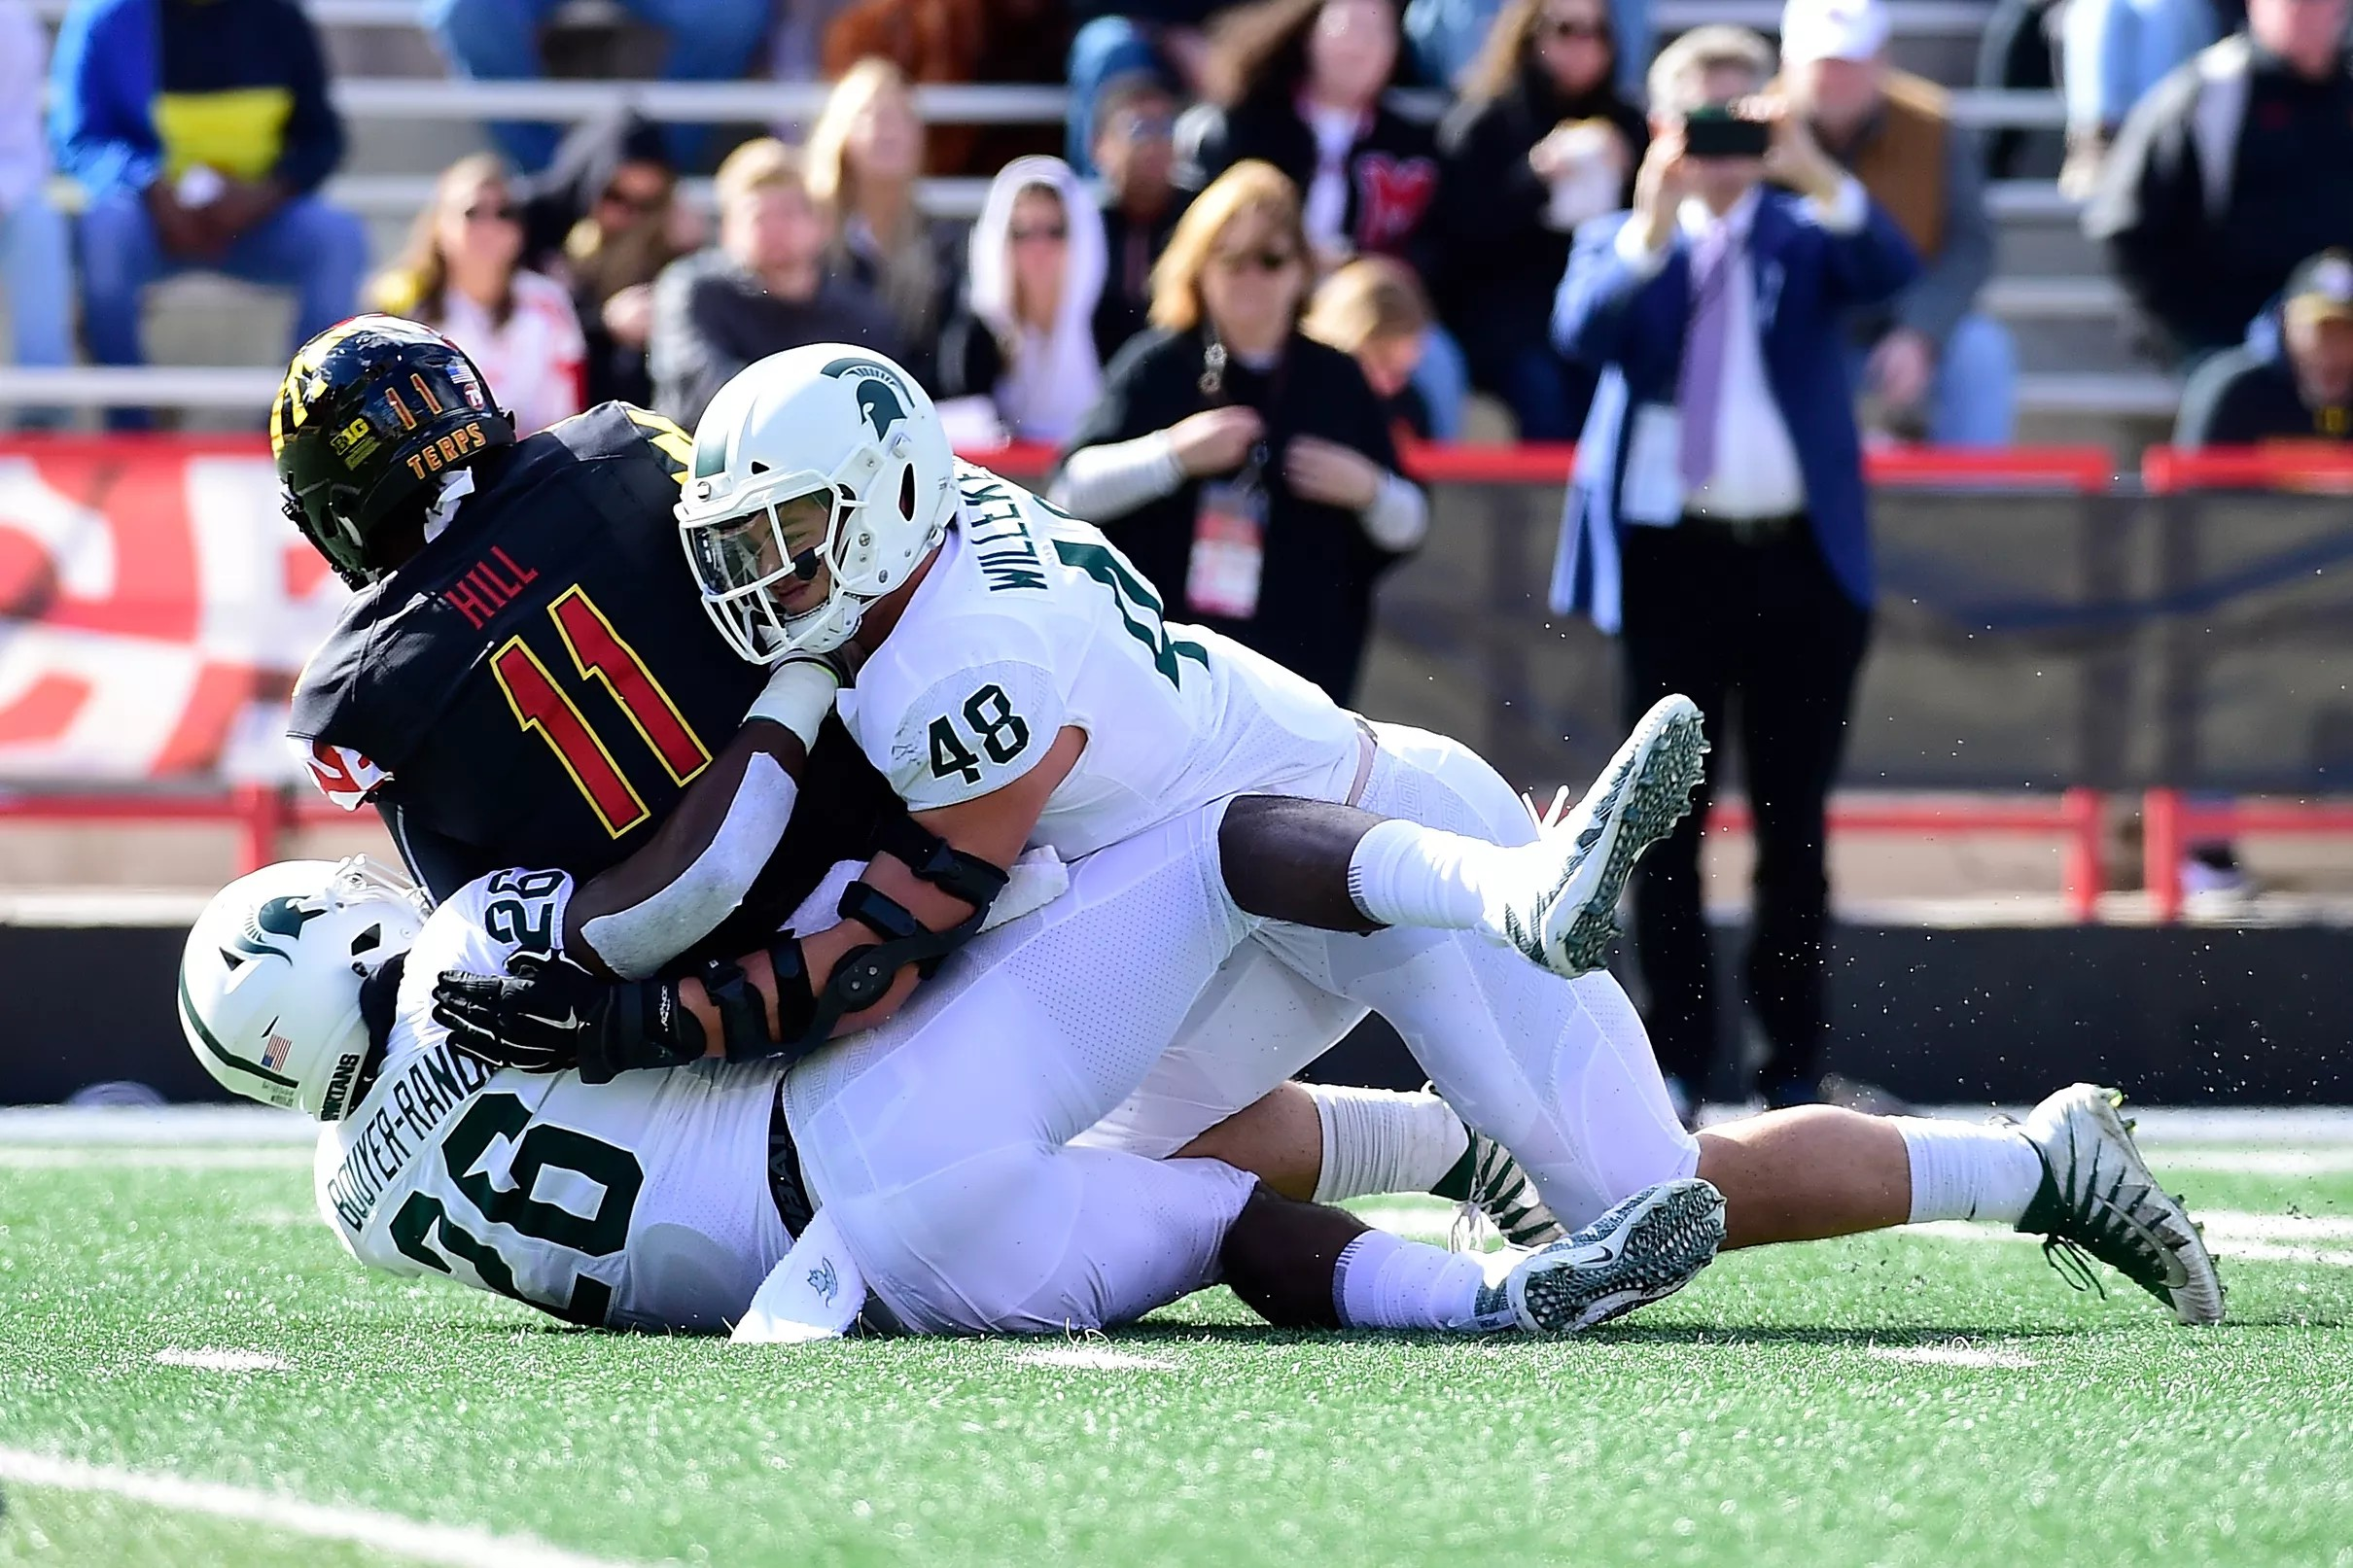 Maryland football falls to Michigan State, 24-3